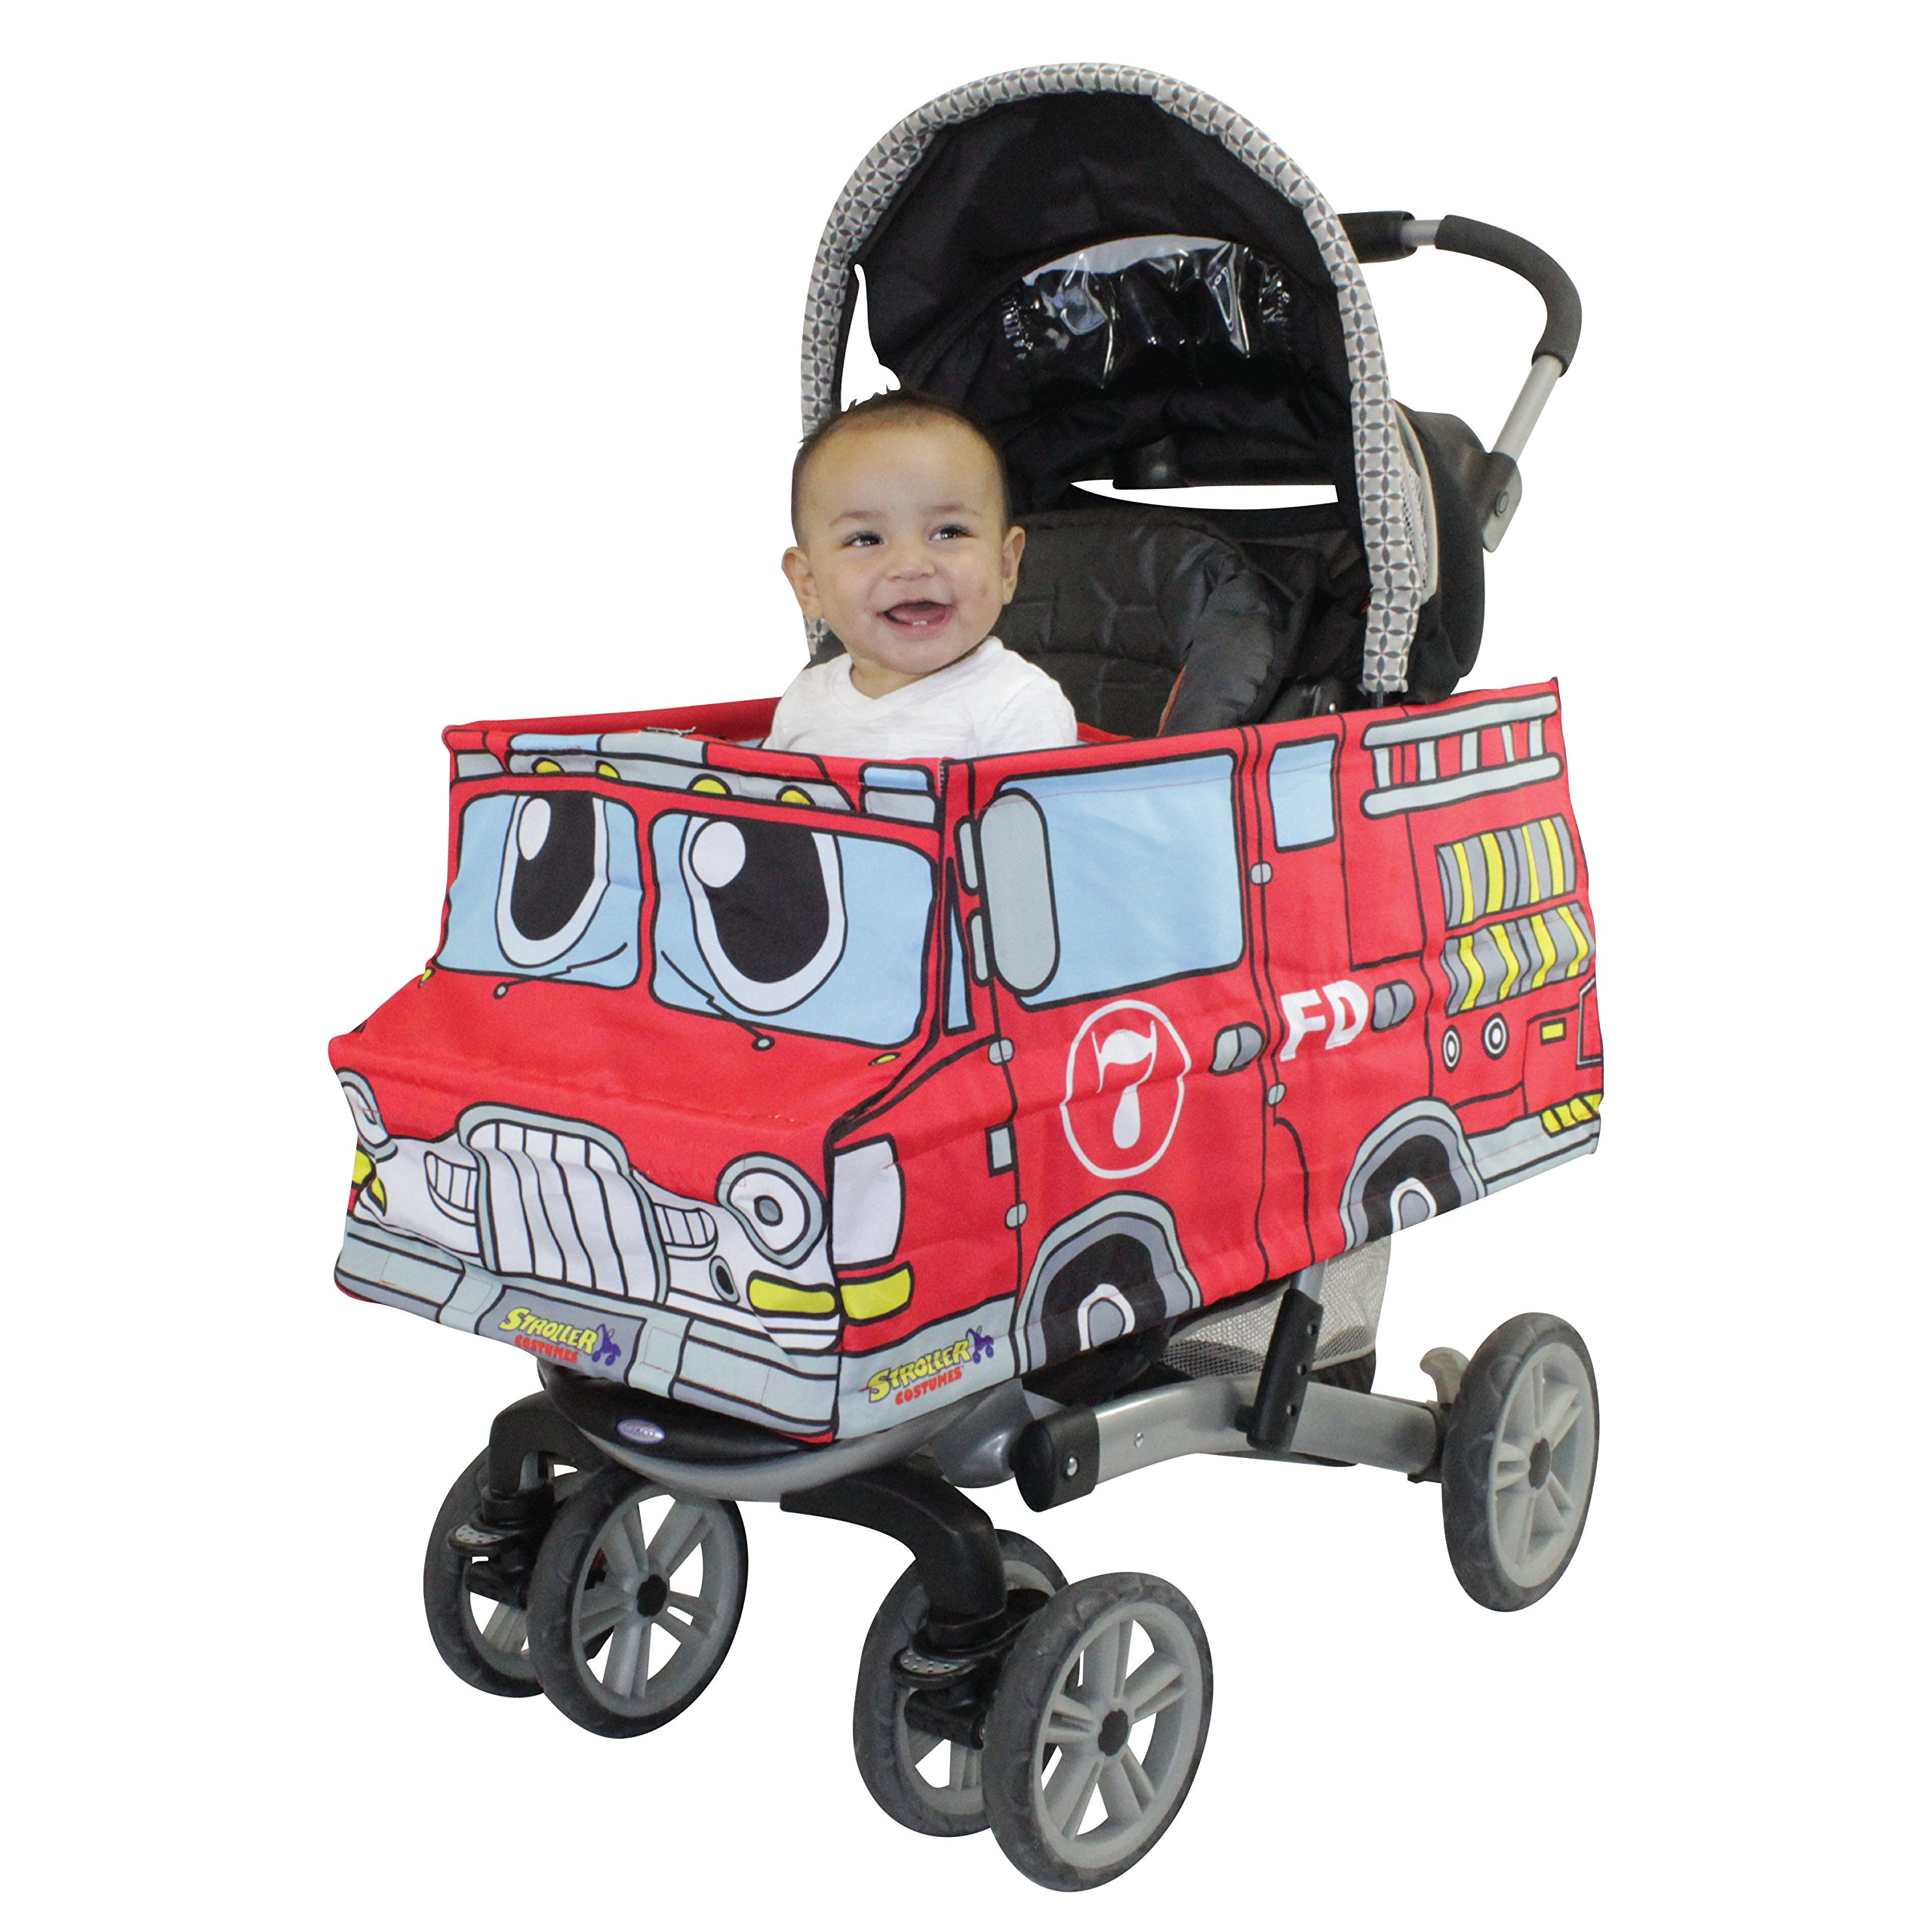 Stroller Costumes Fire Truck Turns Stroller Into A Baby, Toddler Ride On Car Toy